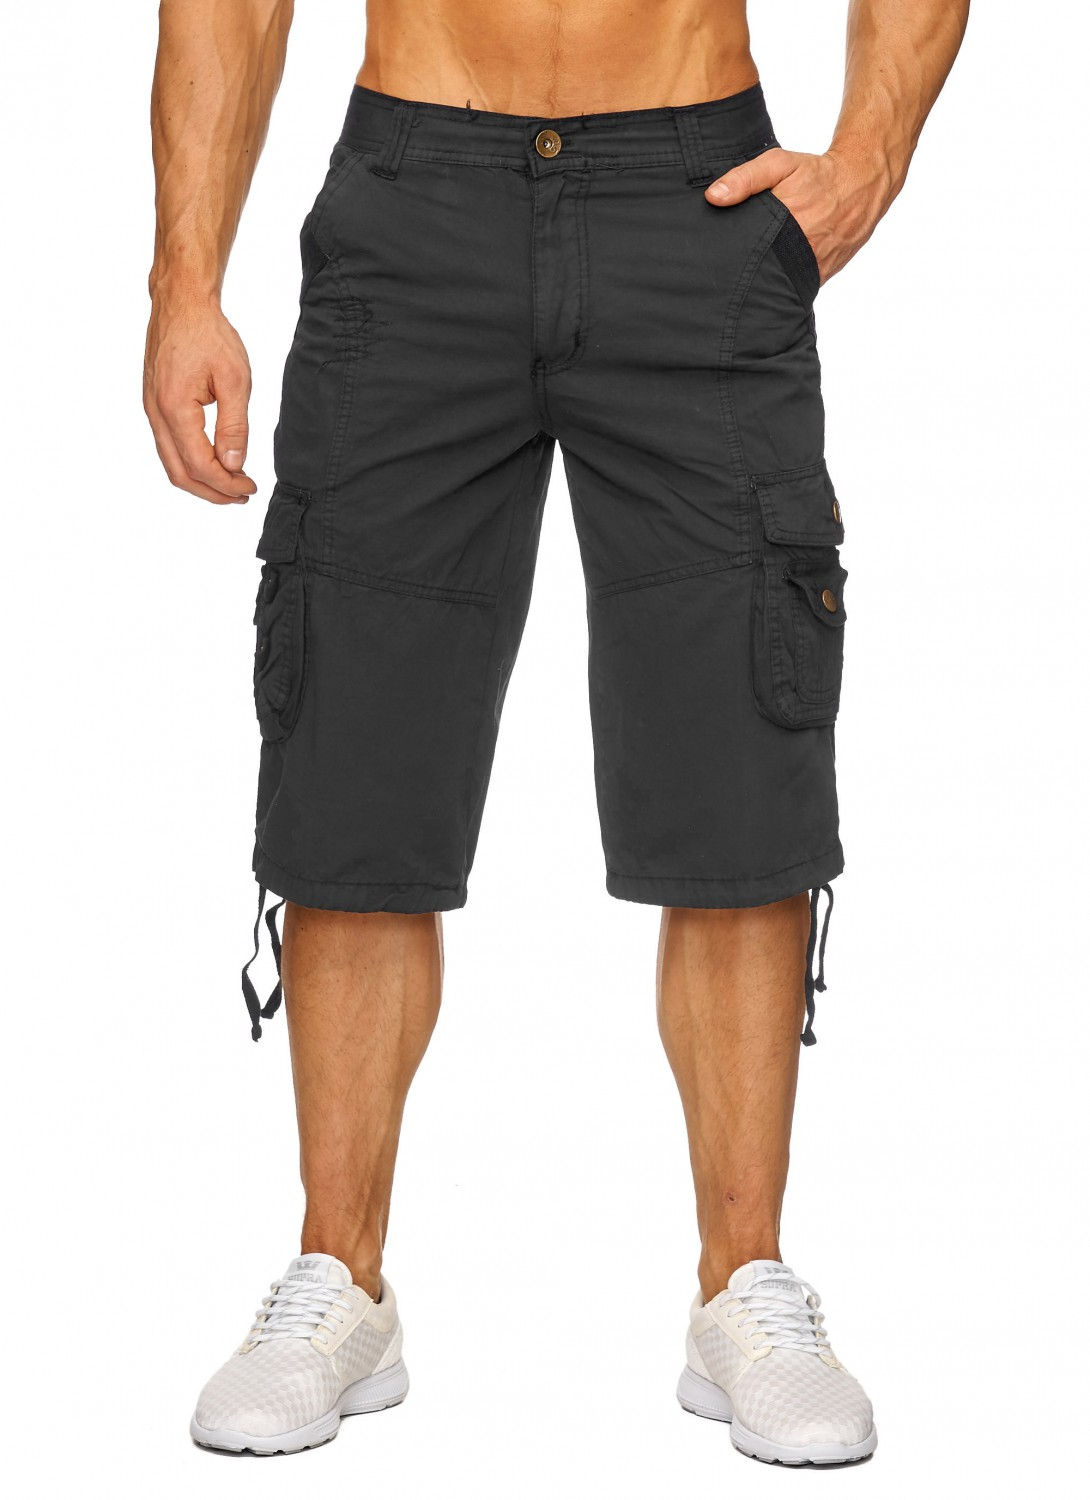 herren cargo capri shorts 2017 sommer arbeitshose jeans bermuda kurz hose hot ebay. Black Bedroom Furniture Sets. Home Design Ideas